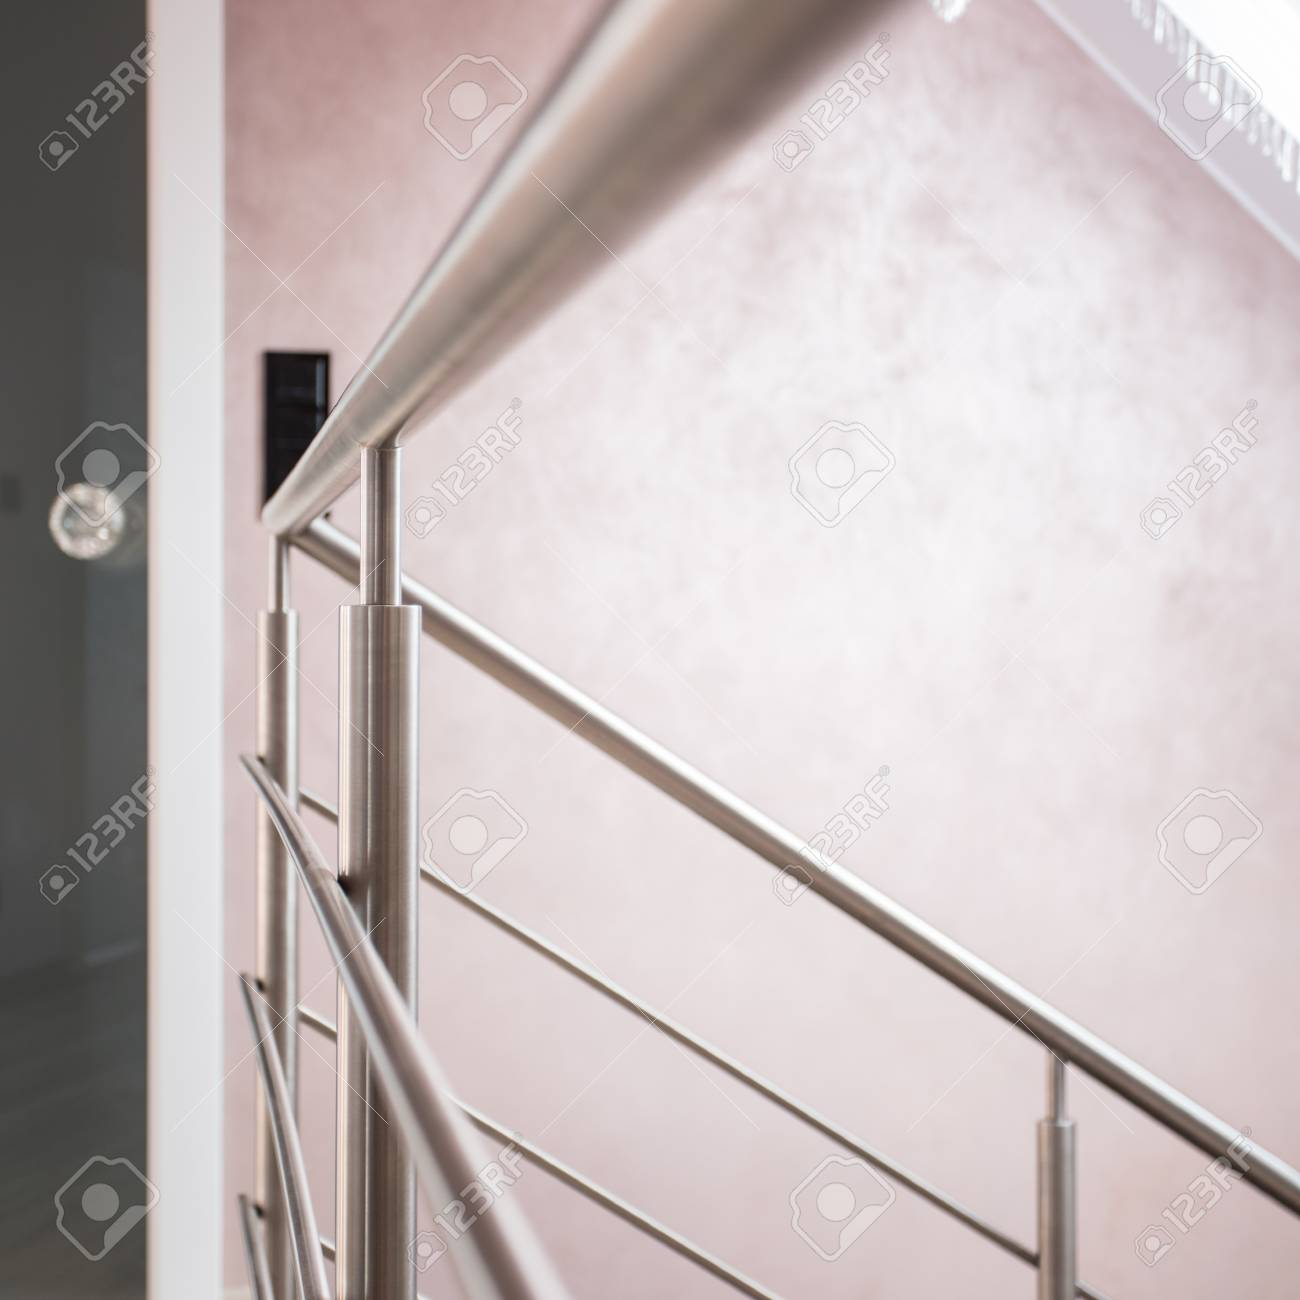 Close up of silver railing and door with diamond handle Stock Photo - 48364816 & Close Up Of Silver Railing And Door With Diamond Handle Stock Photo ...